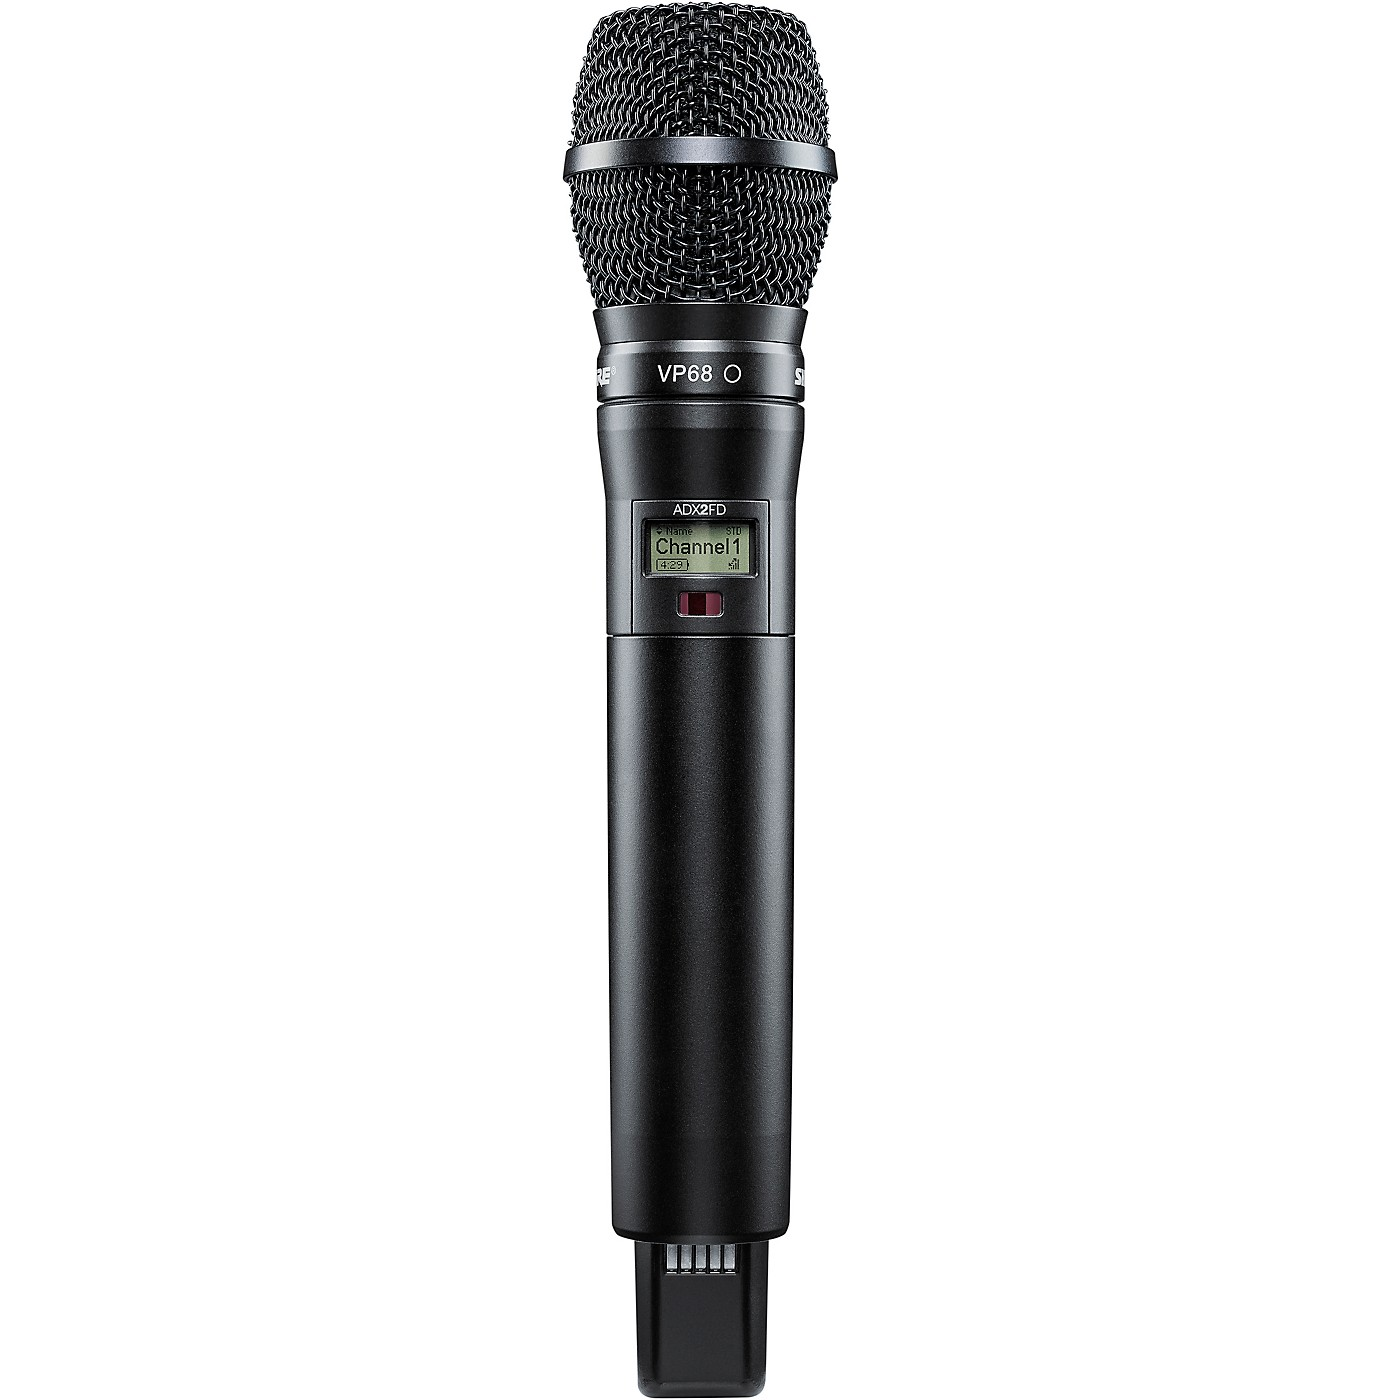 Shure Axient Digital ADX2FD/VP68 Wireless Handheld Microphone Transmitter With VP68 Capsule thumbnail